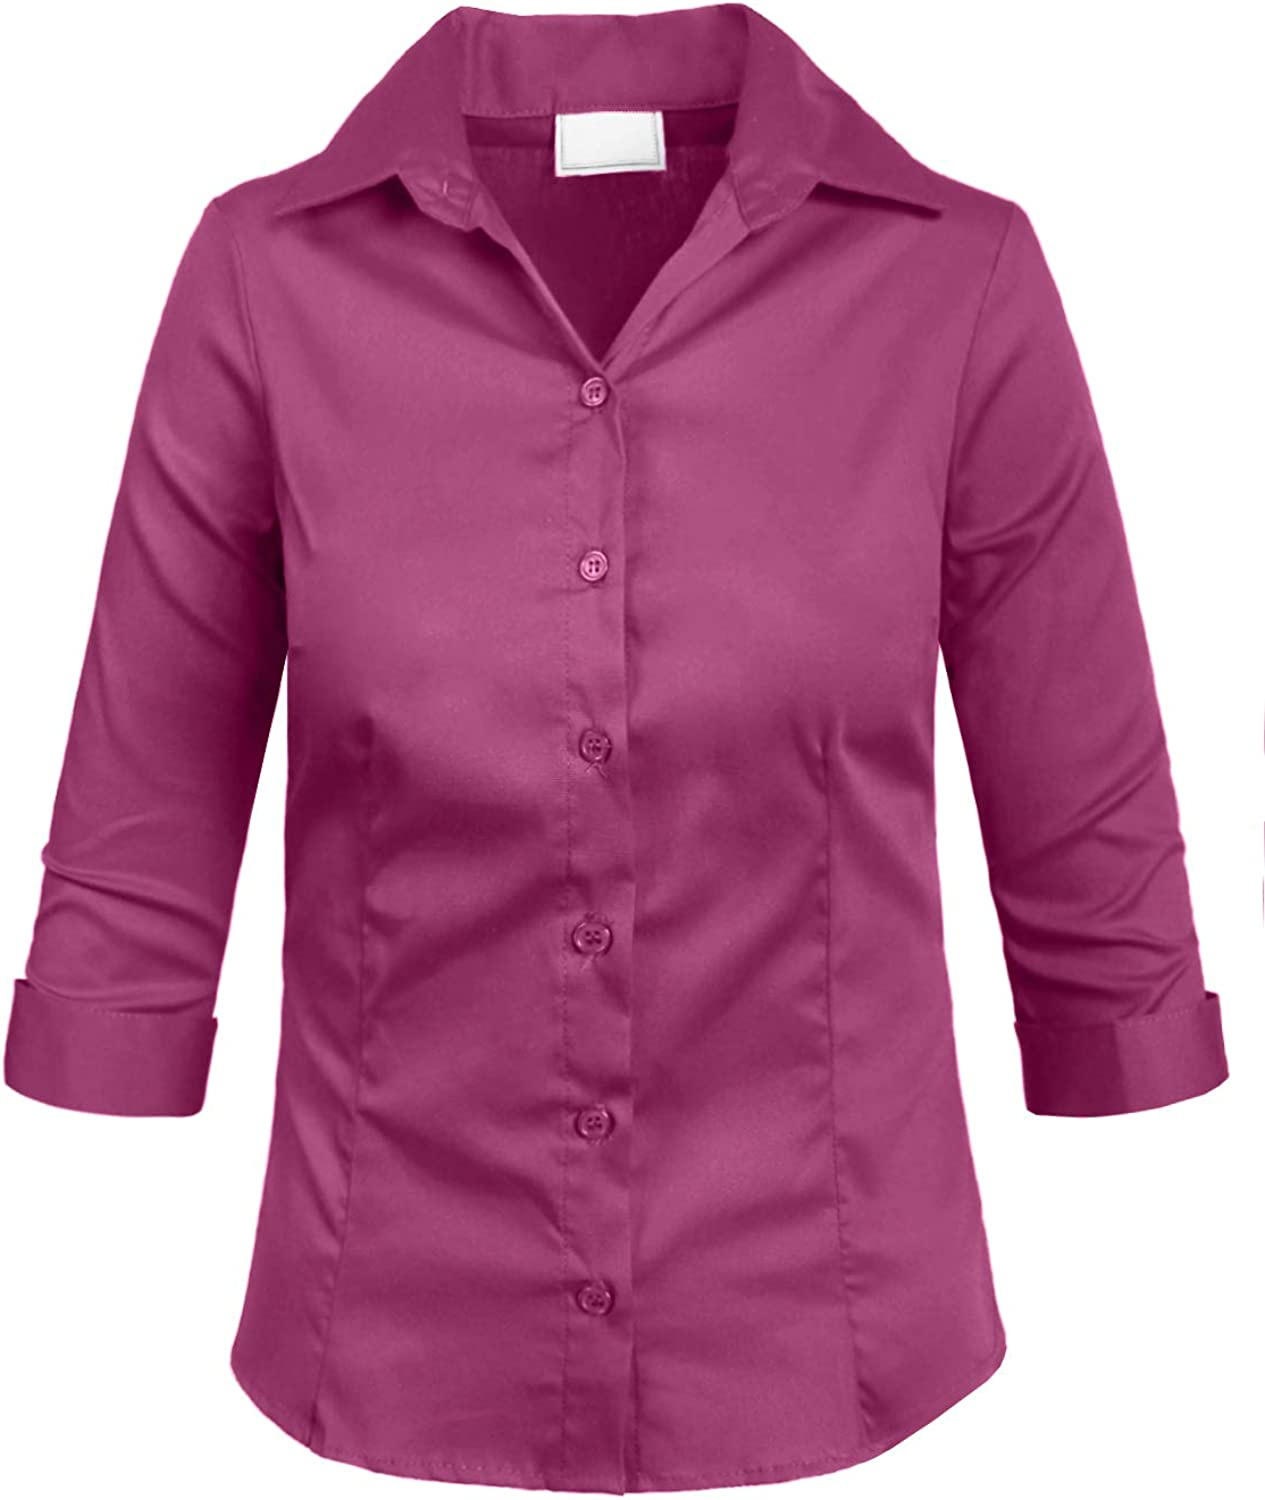 NE PEOPLE Girl's Simple Casual 3/4 Sleeve Roll Up Button Down Blouse Shirts